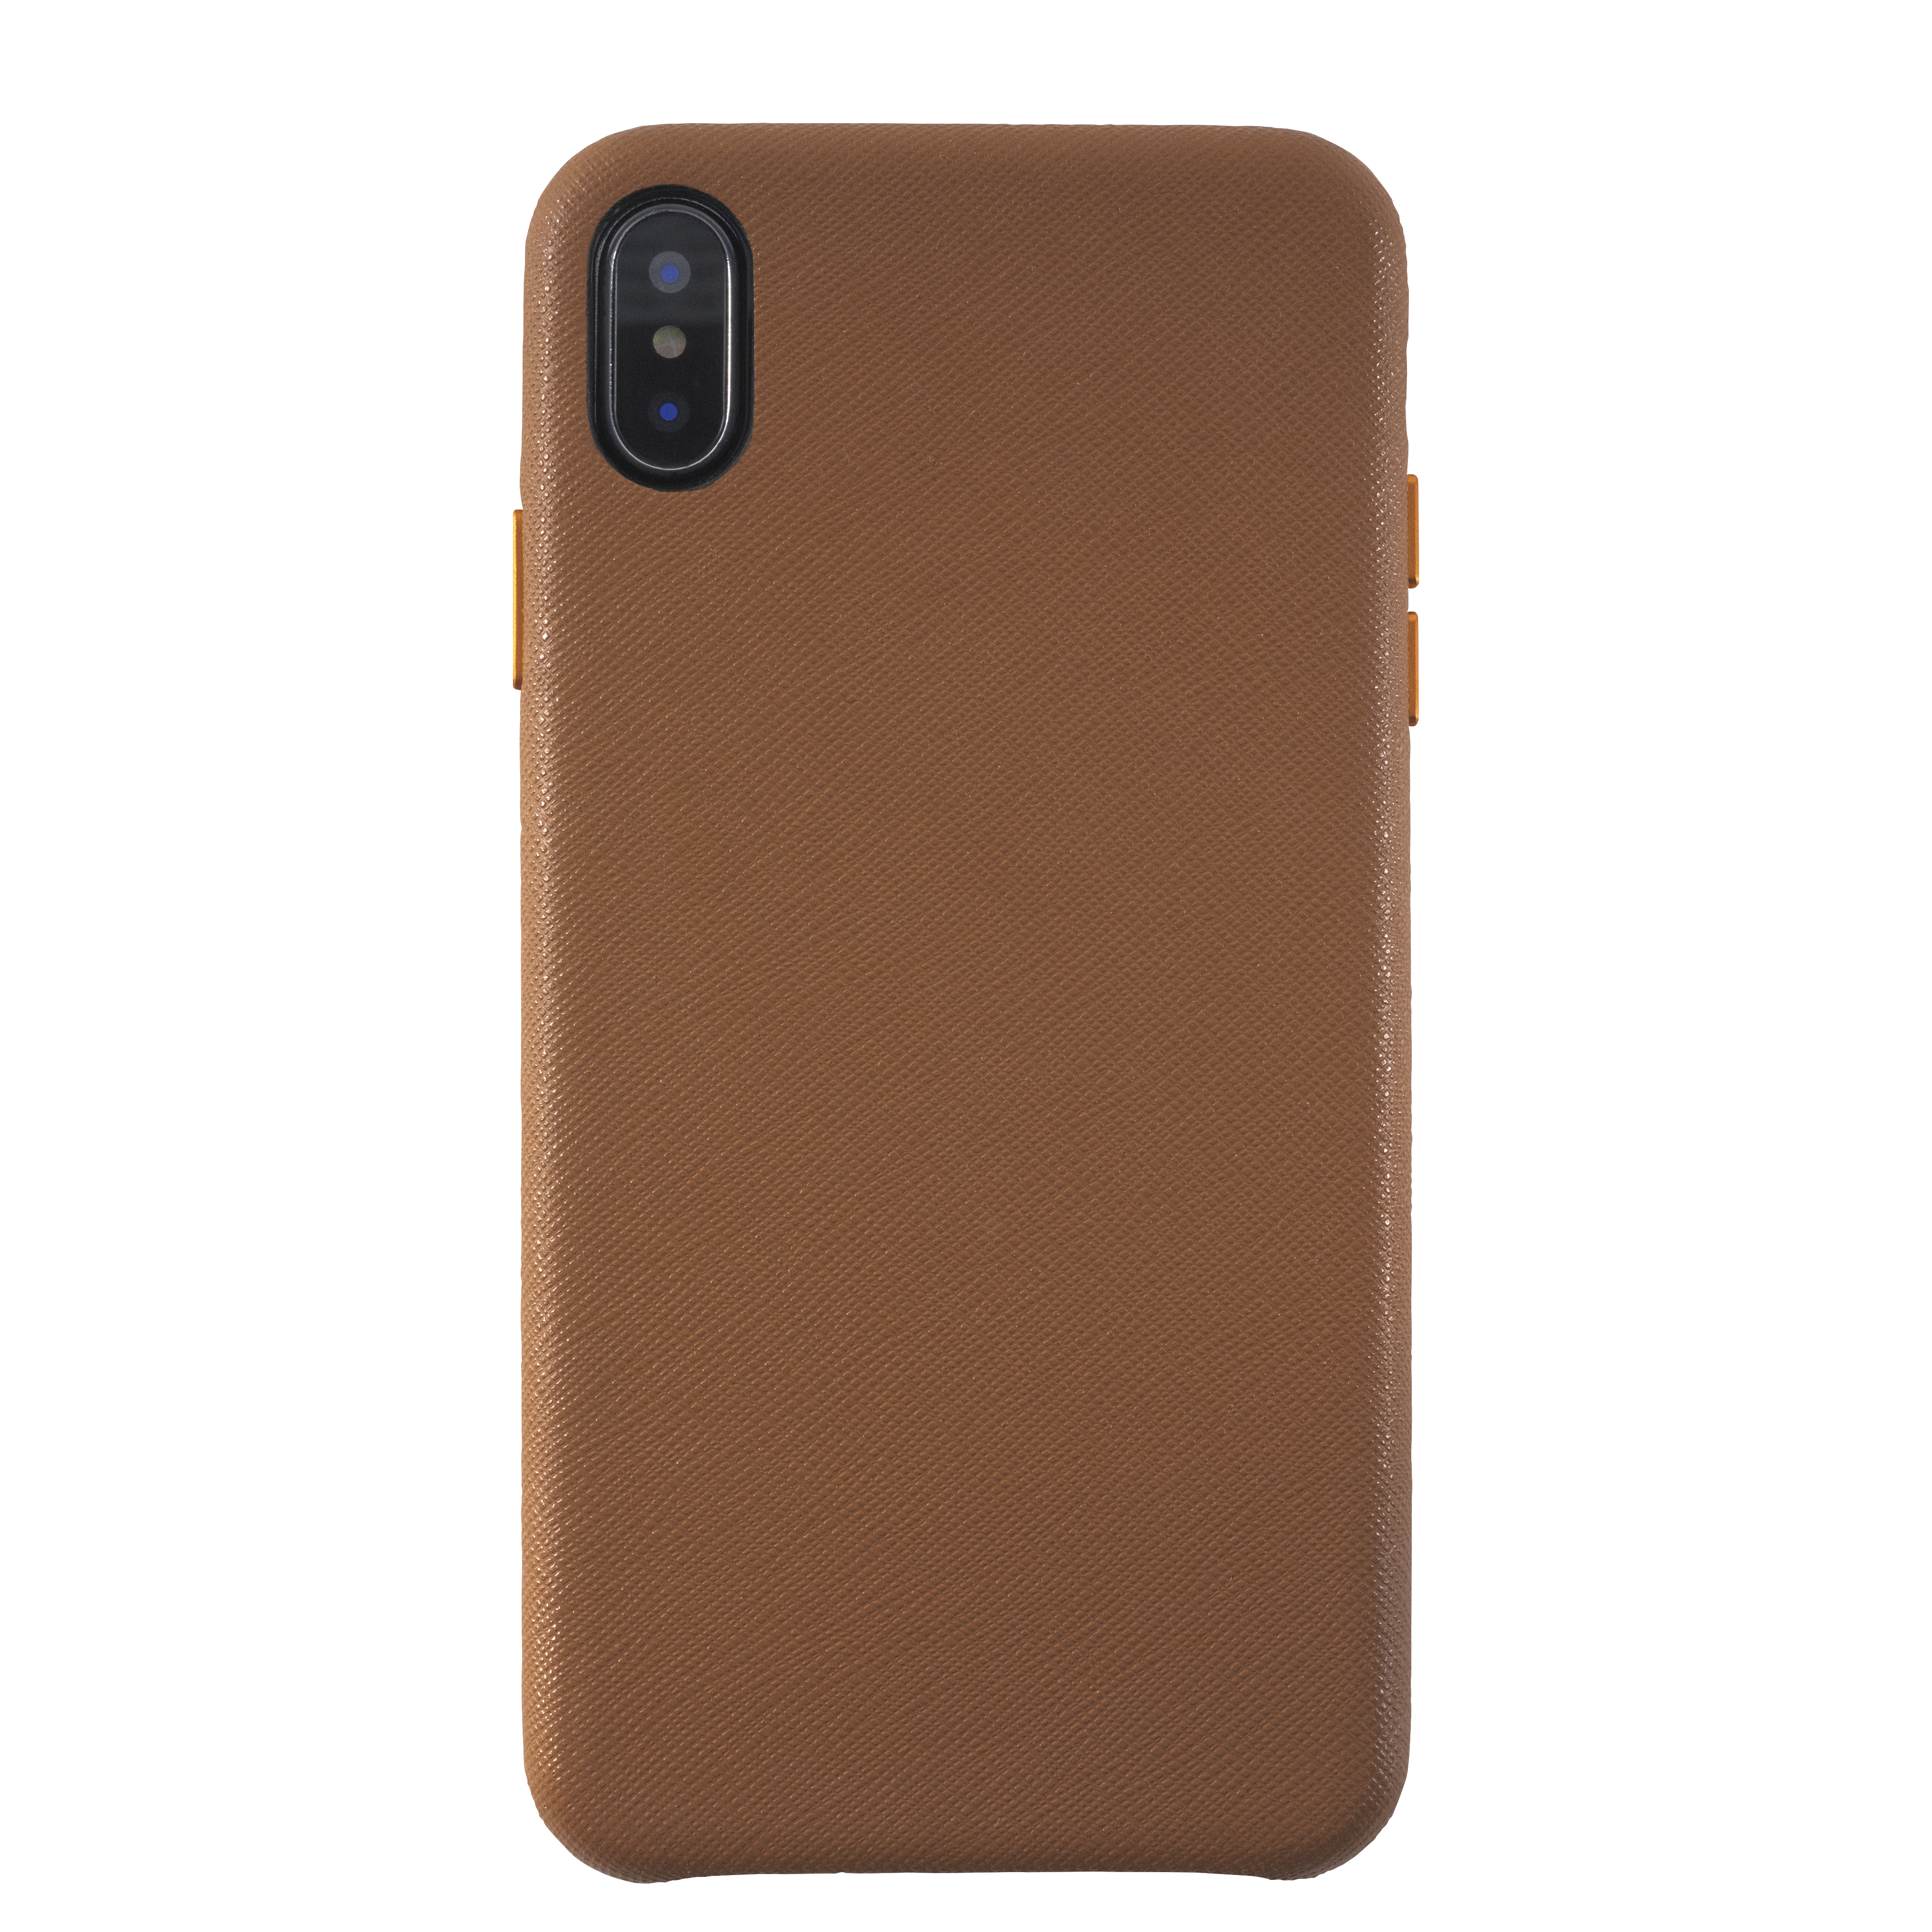 KMP Schutzhülle Leather Case für iPhone XS Max-meerkat brown